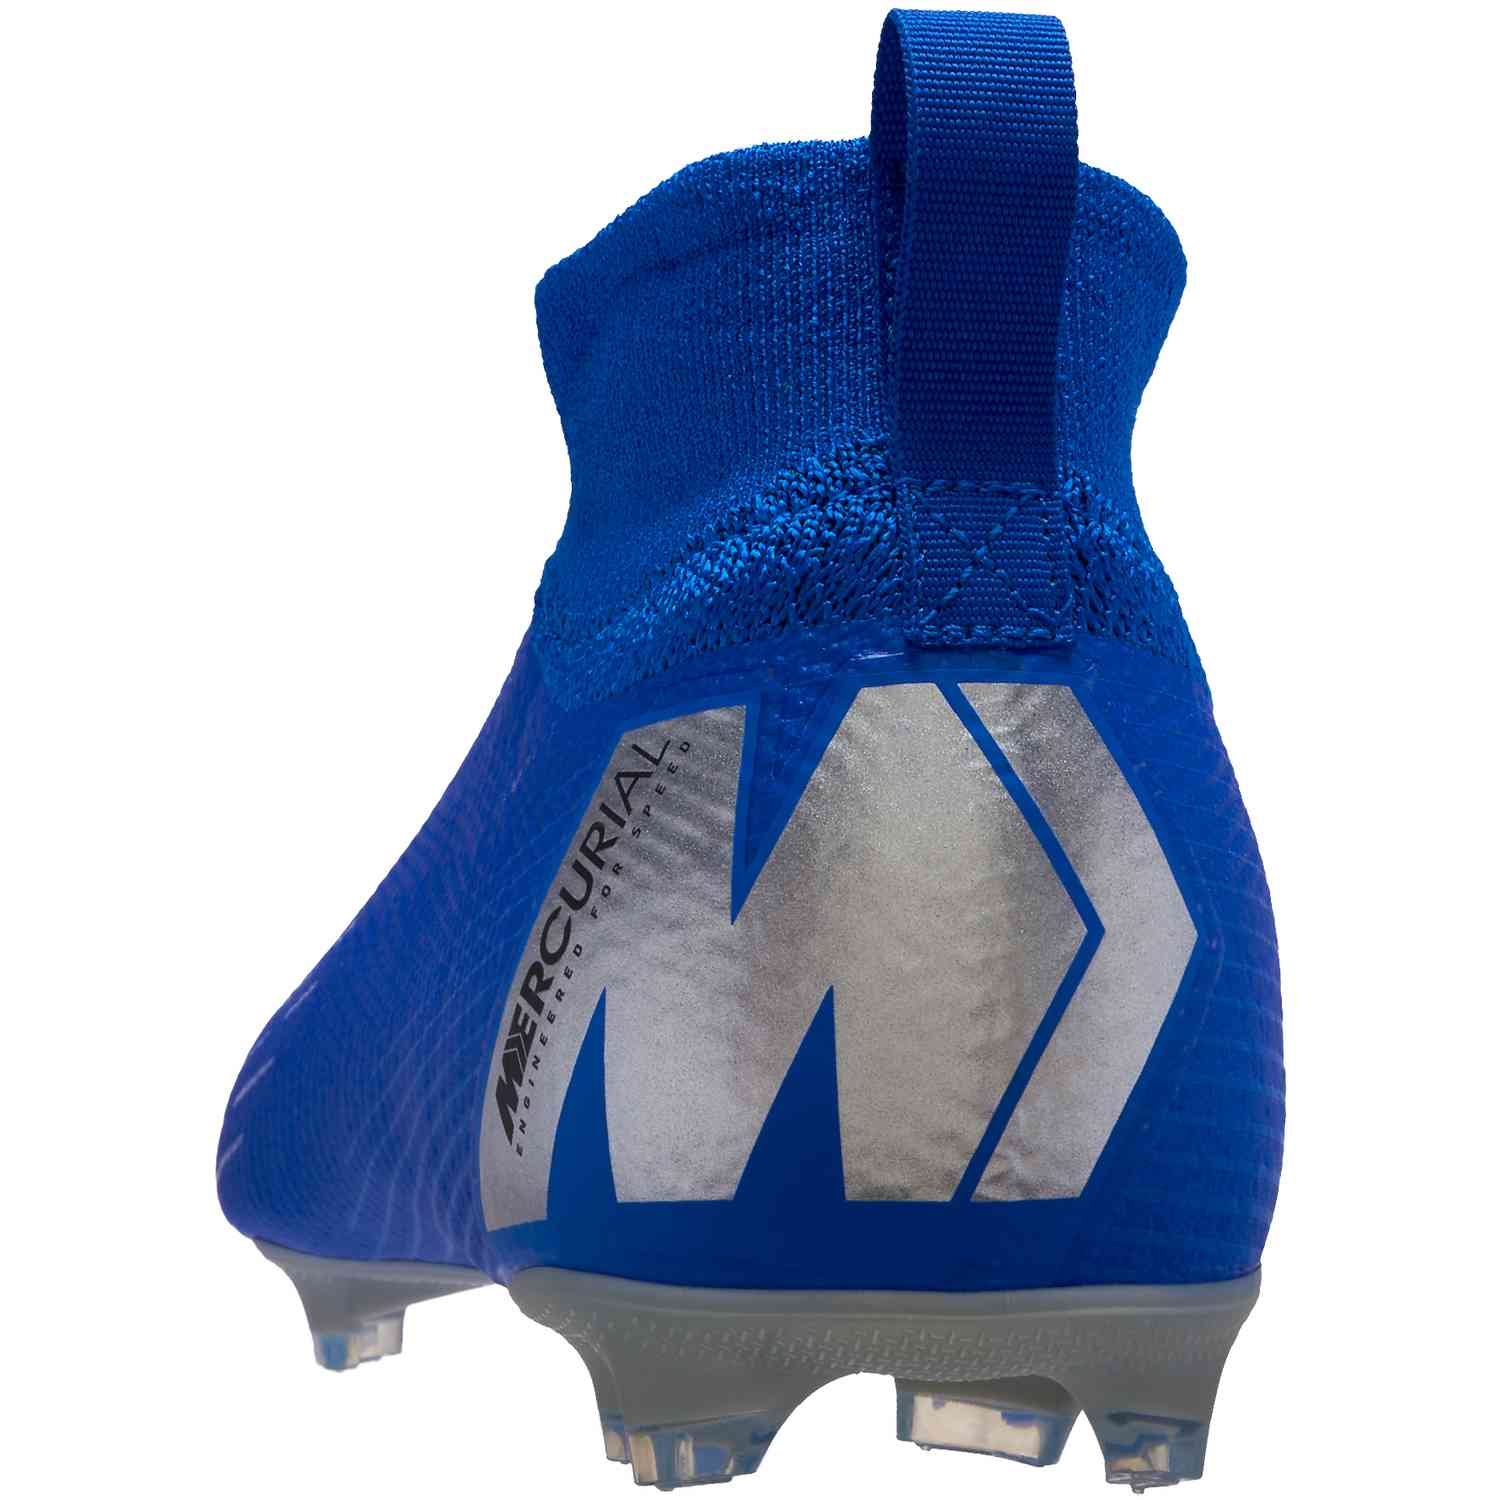 c63e1332a Nike Mercurial Superfly 6 Elite FG – Youth – Racer Blue/Metallic  Silver/Black